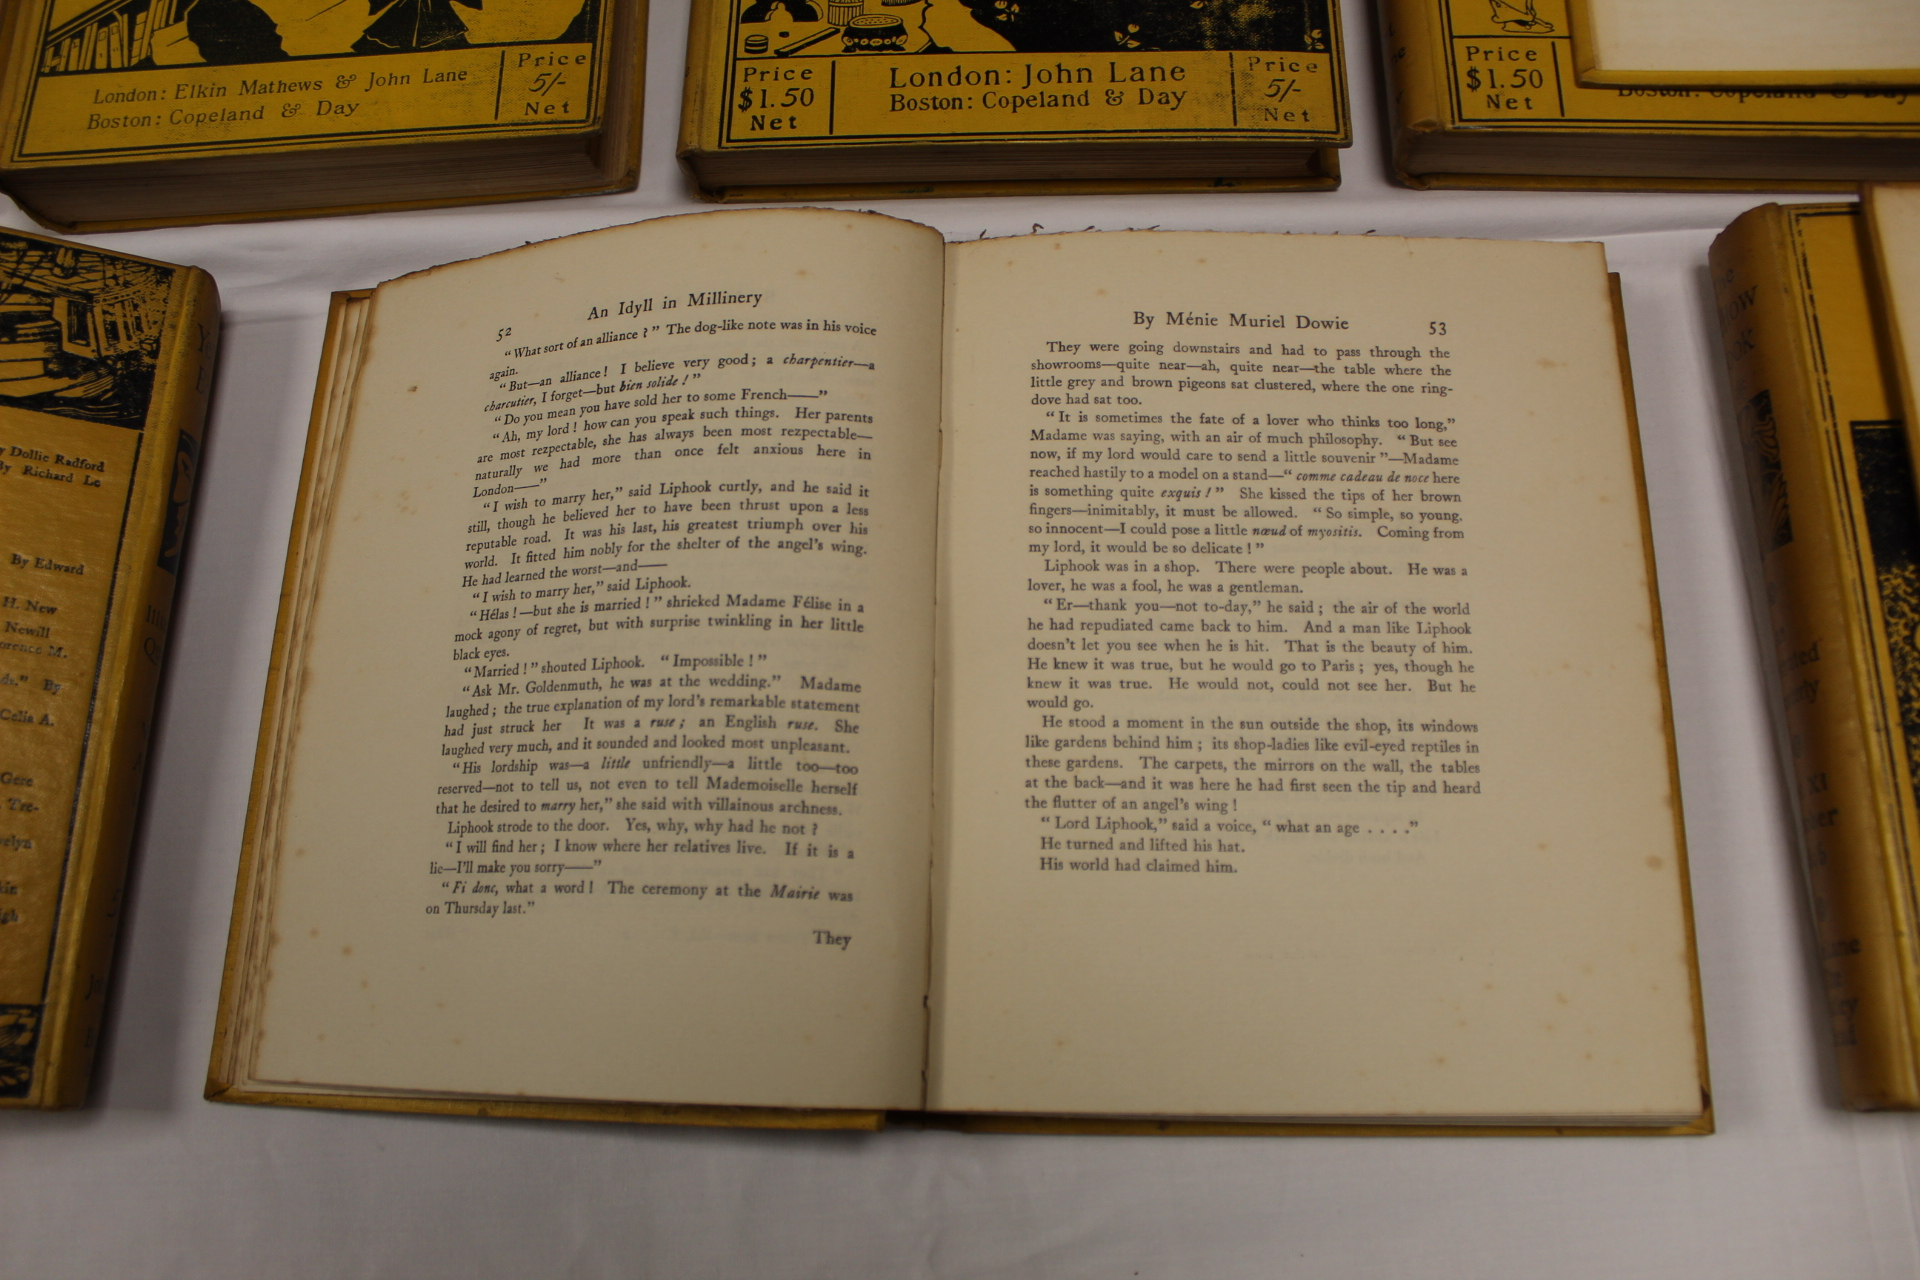 THE YELLOW BOOK.An Illustrated Quarterly. A set of 13 vols., many fine illus. Small quarto. - Image 14 of 45